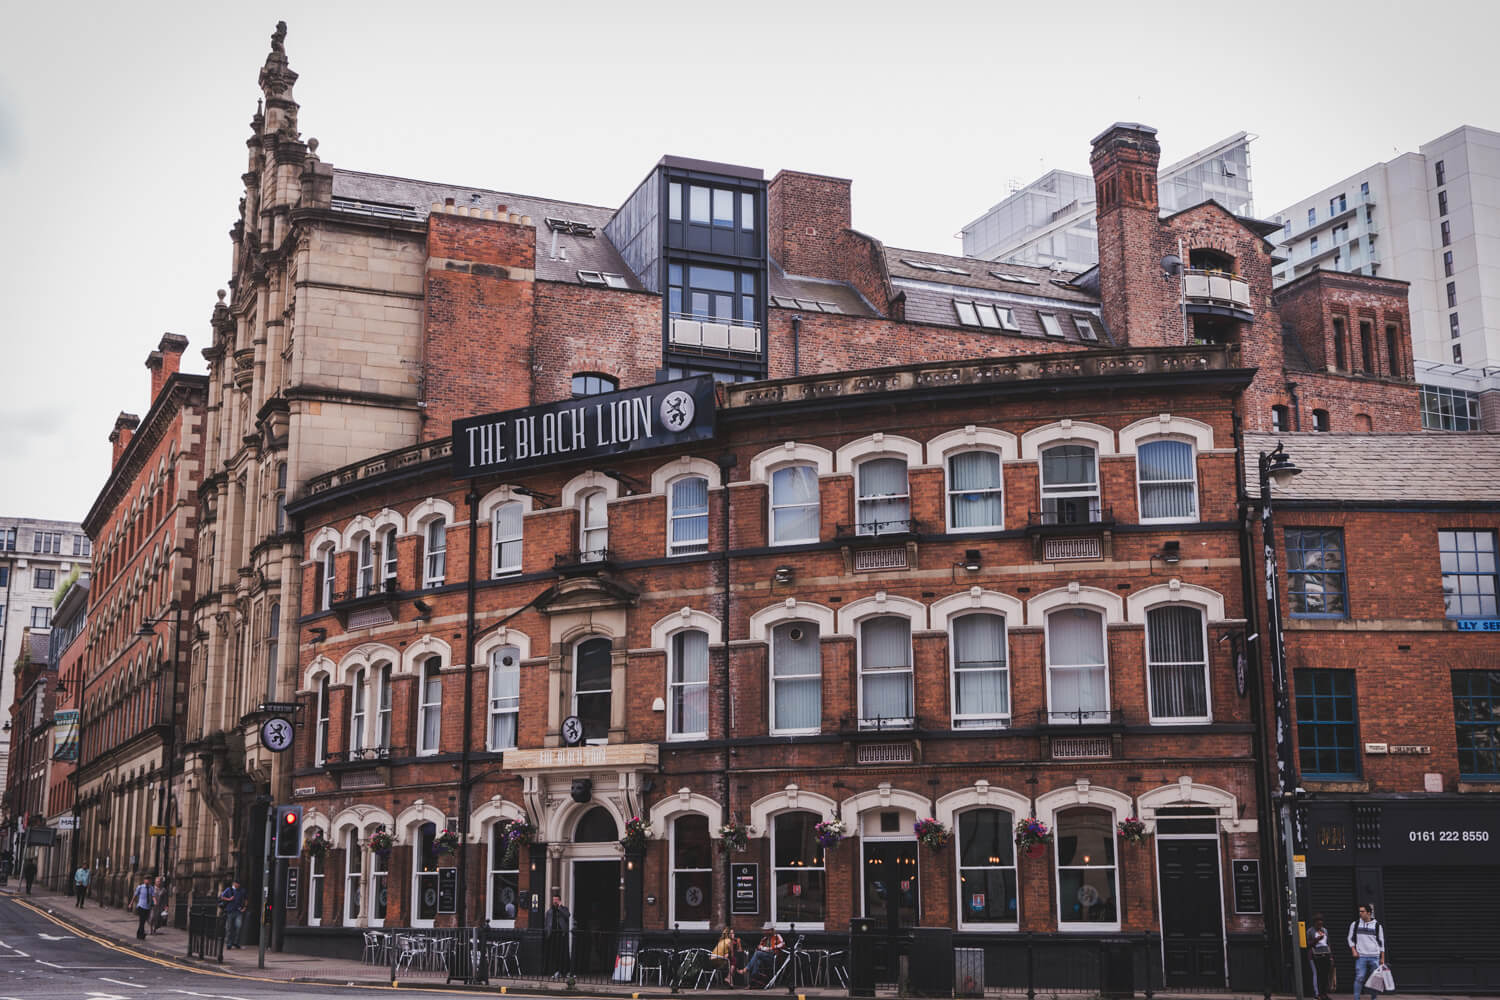 The Black Lion Manchester, UK with brick buildings